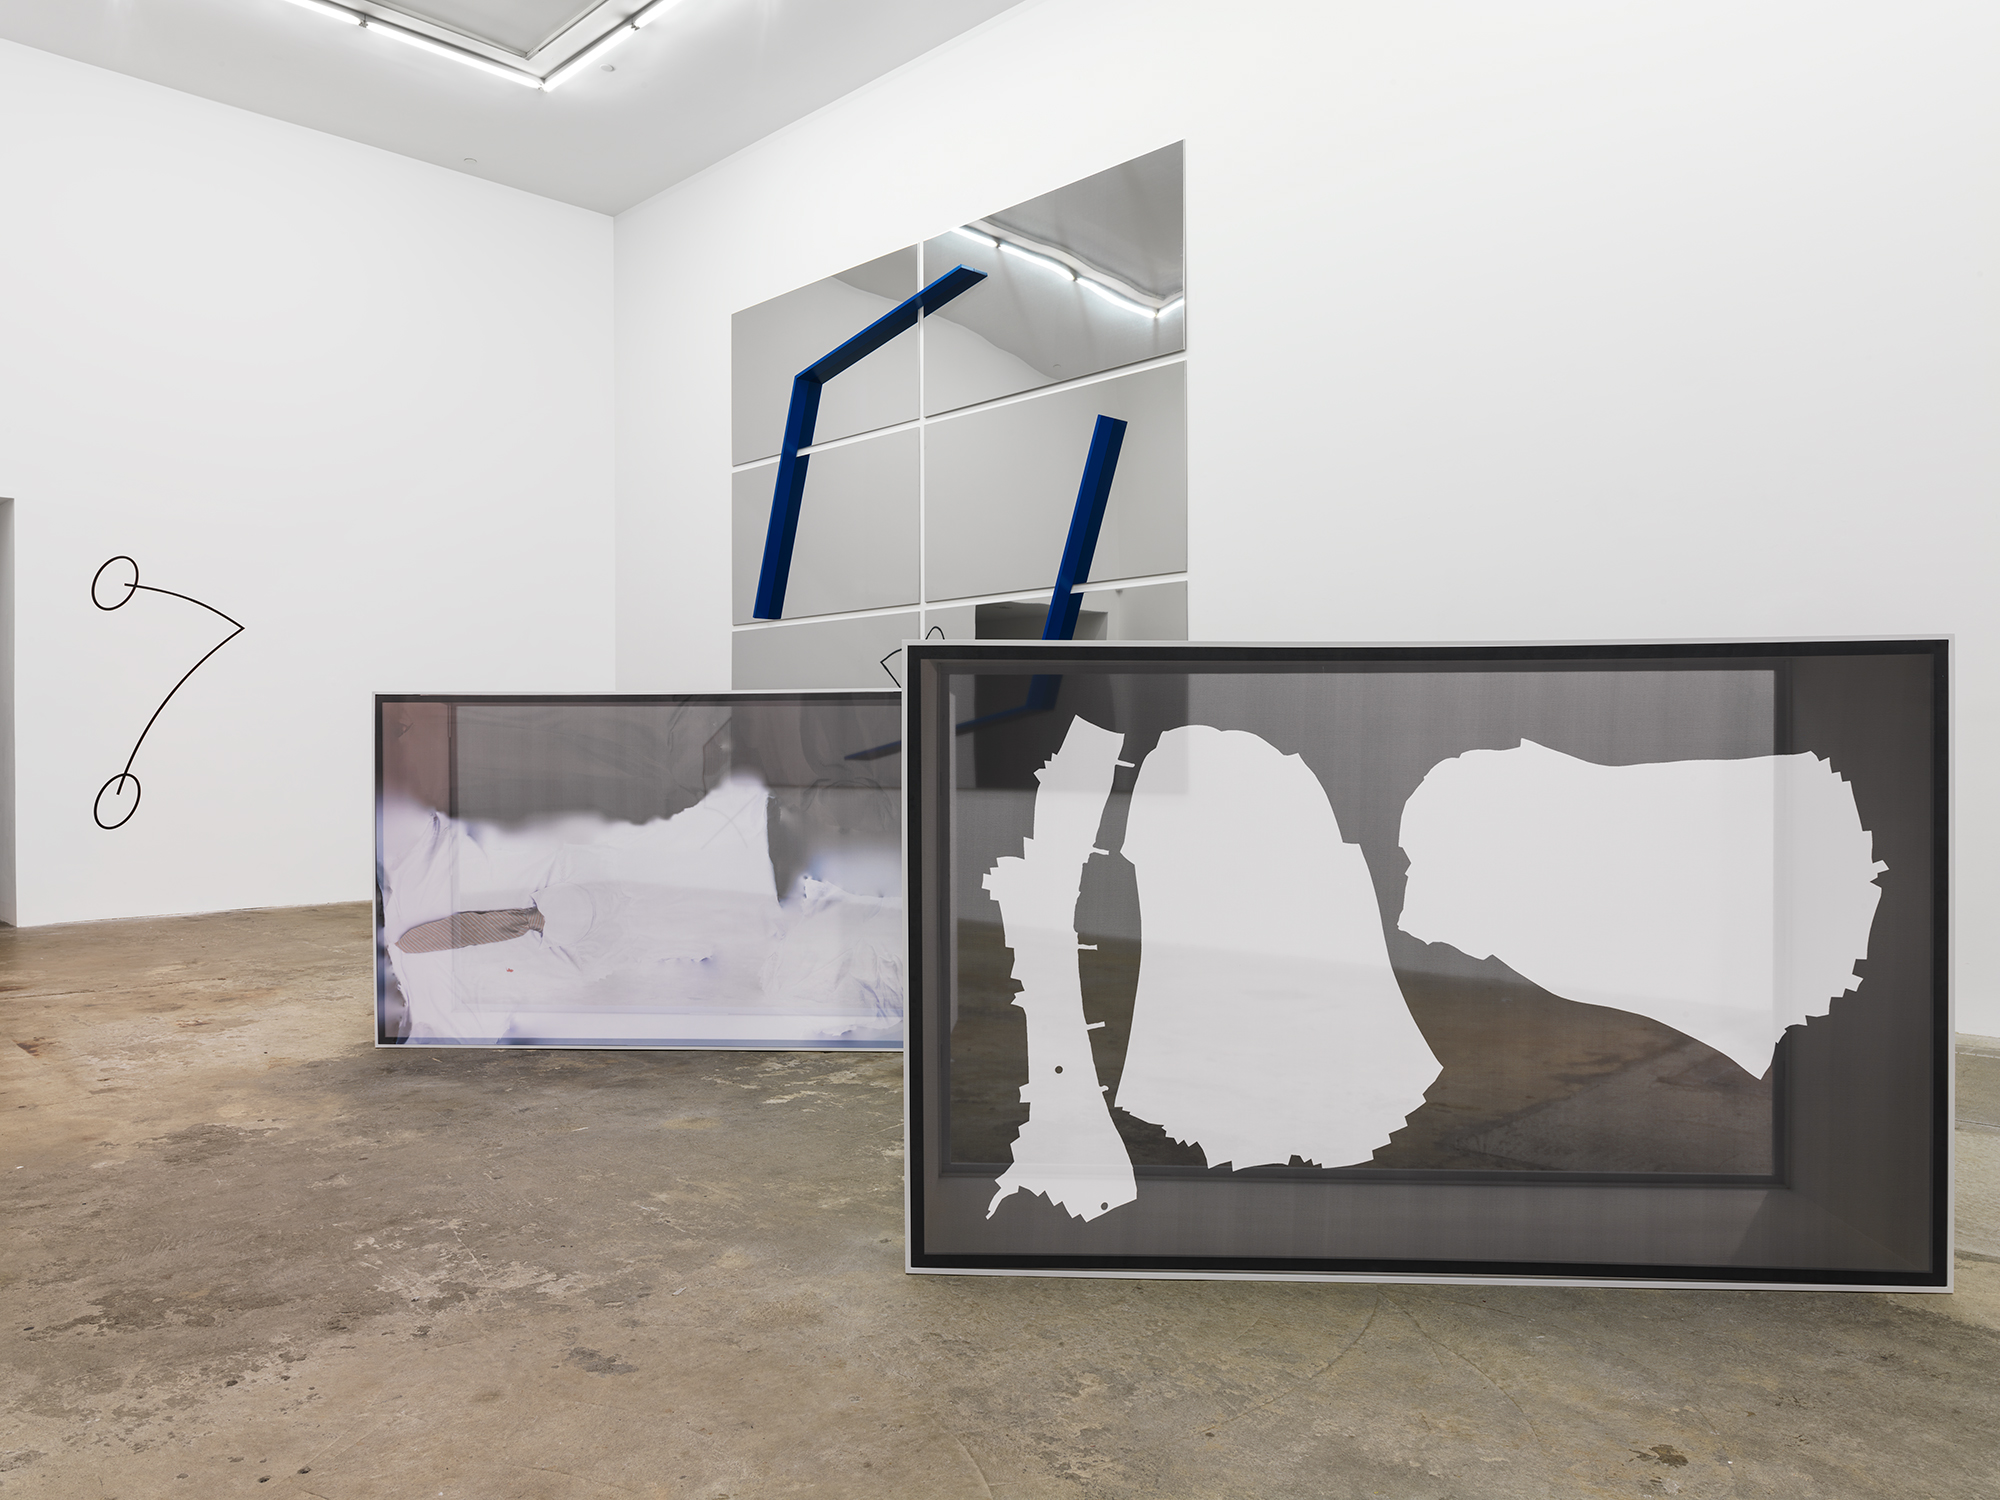 Untitled, 2014, Artie Vierkant, installation view, Model Release gallery, New York. Used with permission.